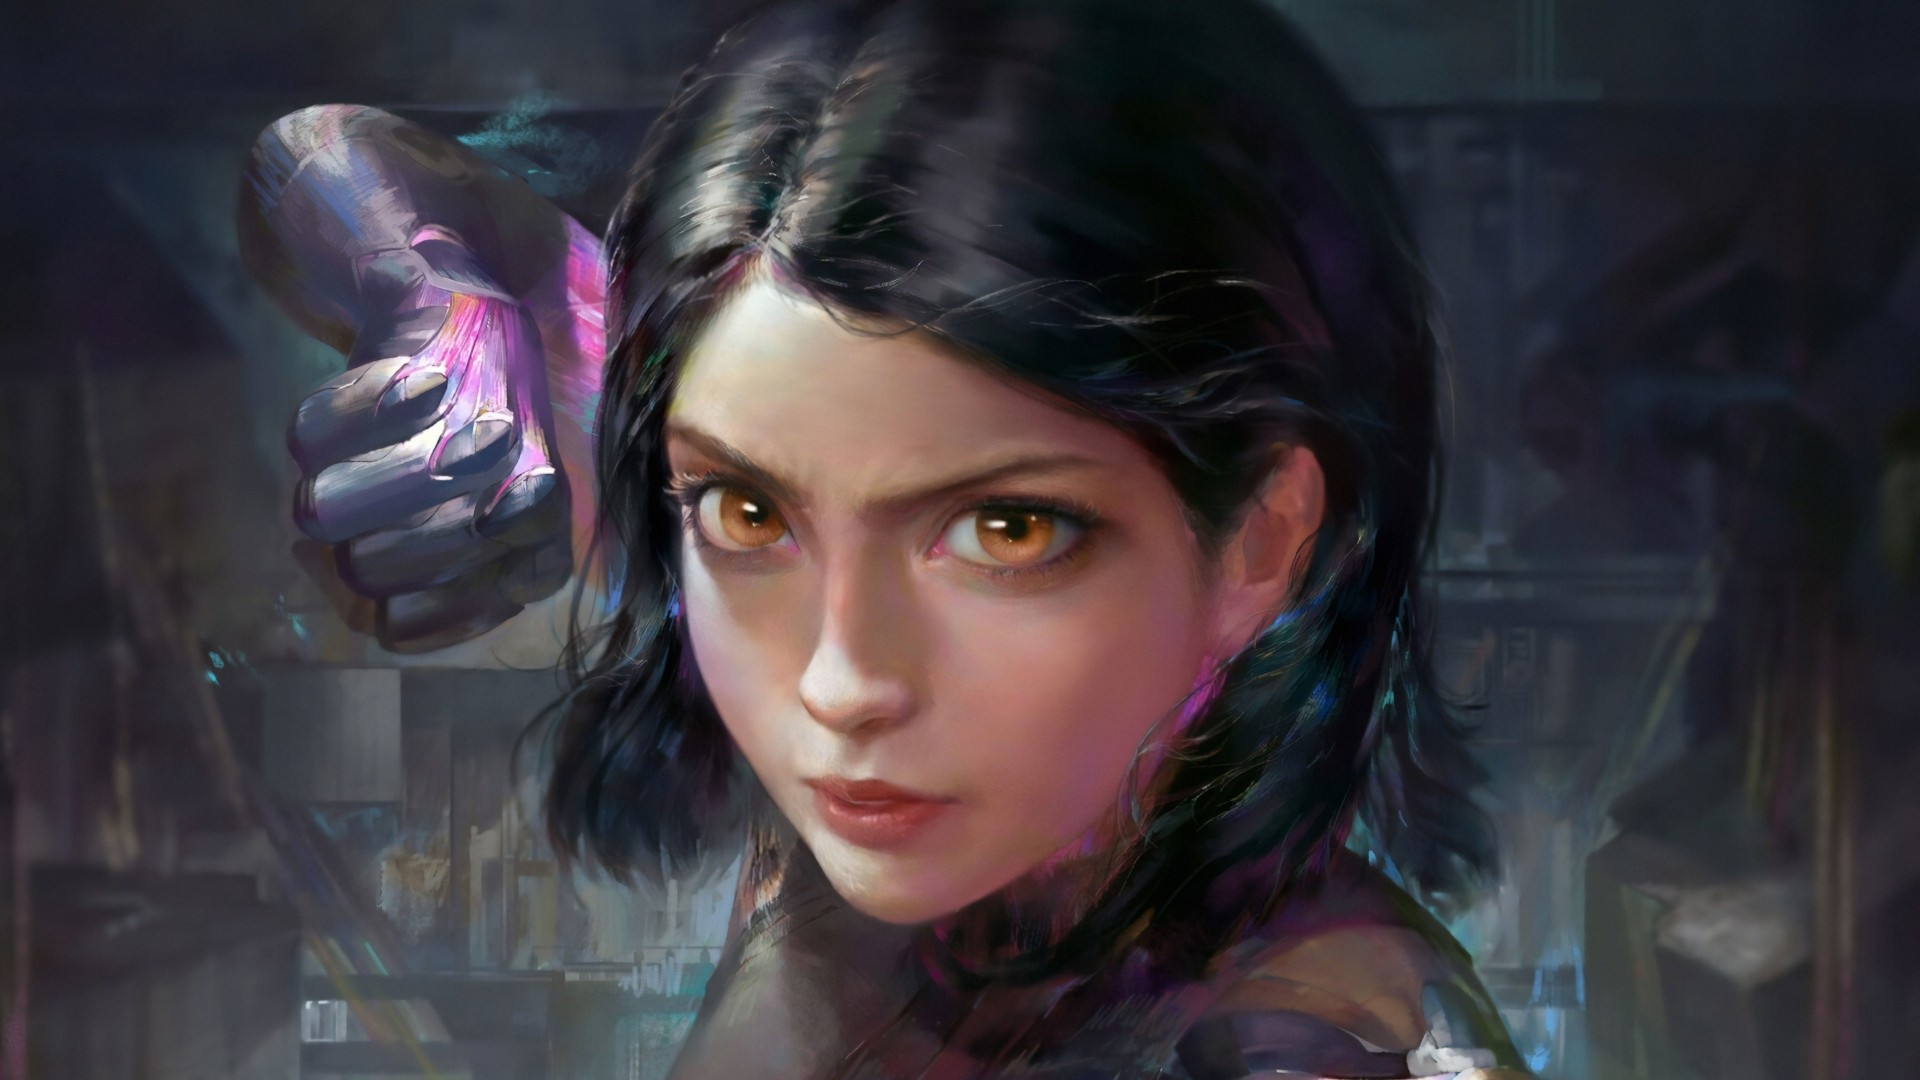 Alita Battle Angel desktop wallpaper hd